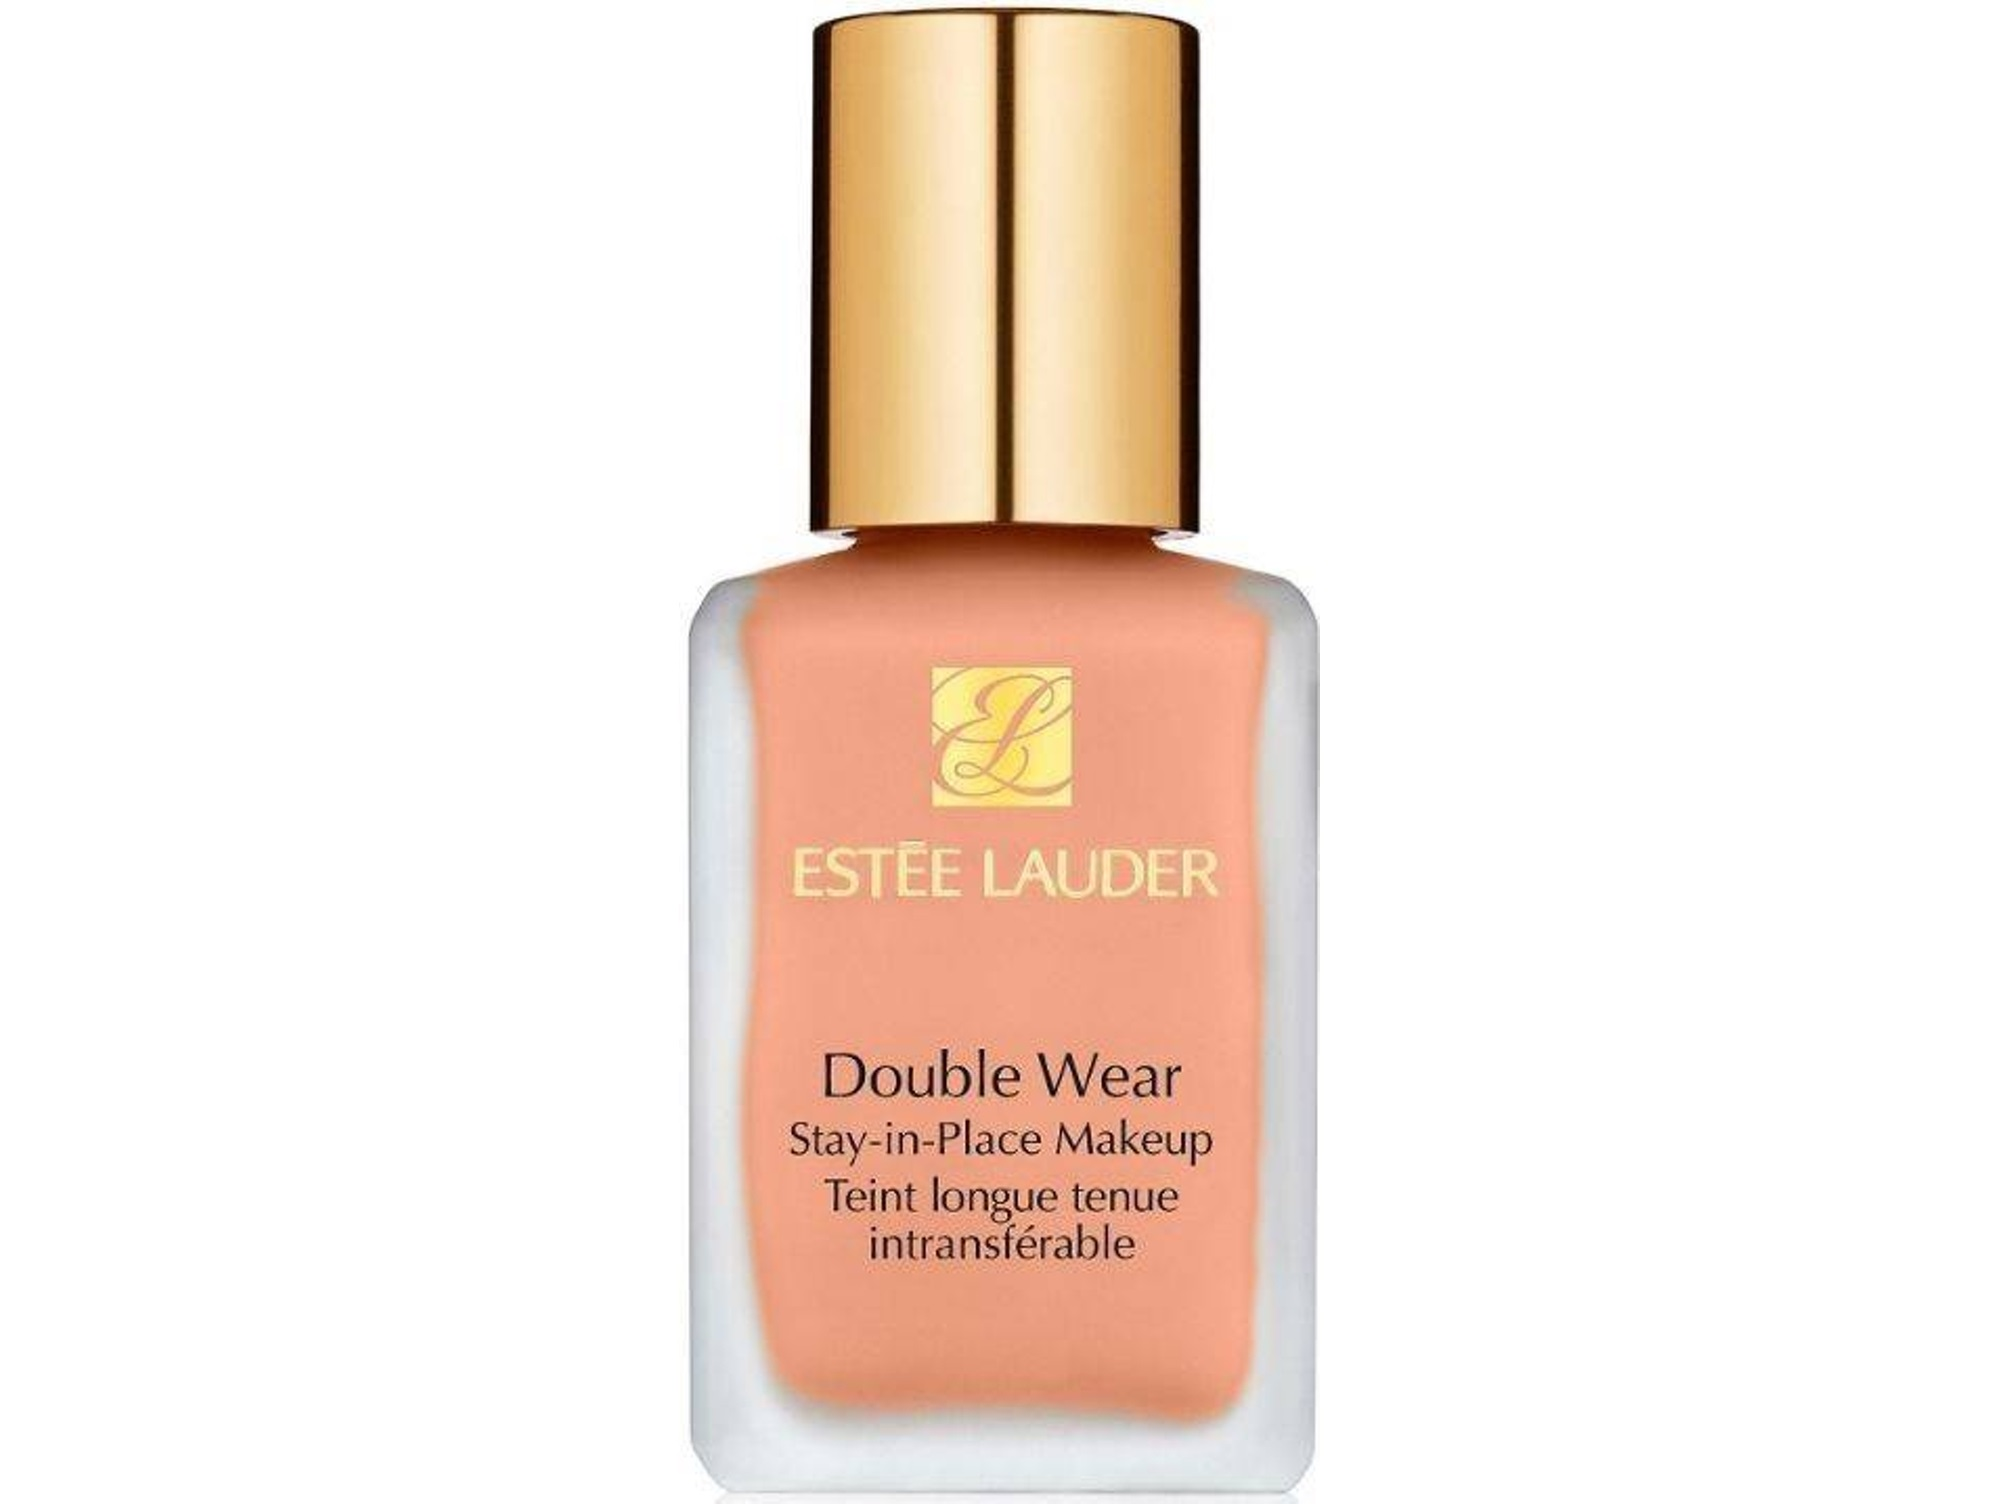 ESTEE LAUDER DOUBLE WEAR FLUIDO N. 4 3C2 PEBBLE 30 ML